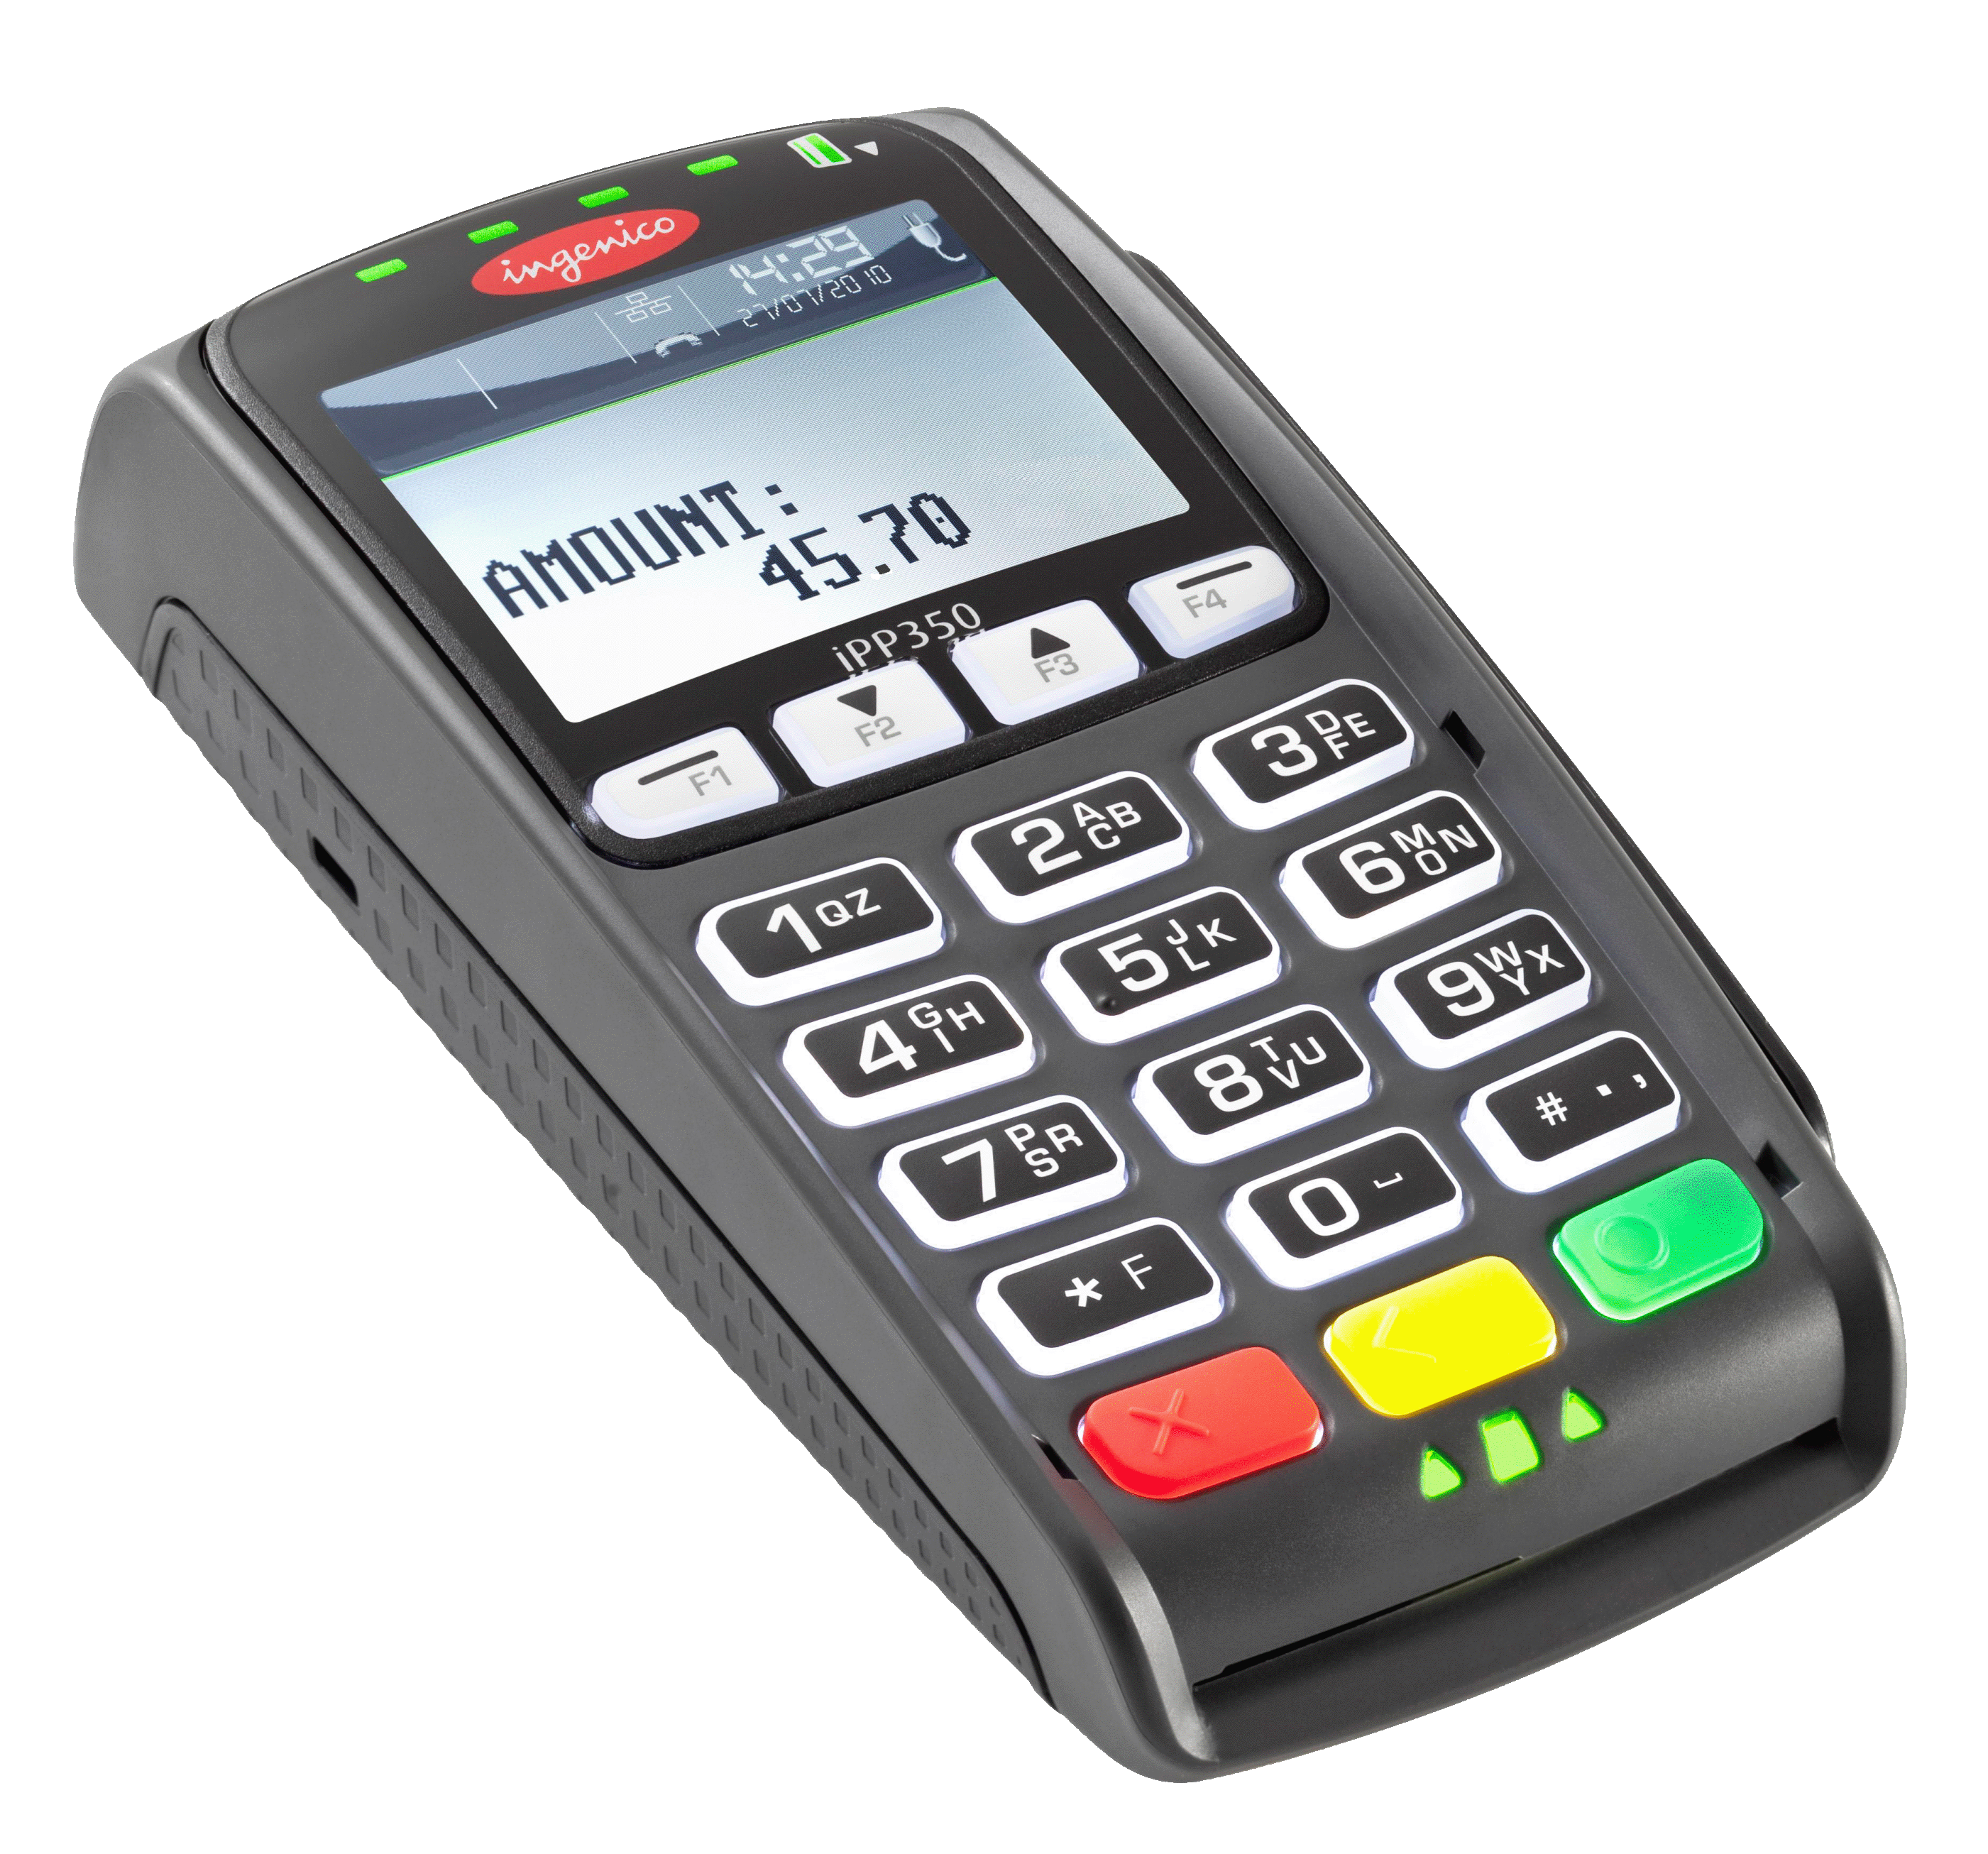 Emv Pin Pad  Card Reader  Accounting America Inc. Online College Courses Free For Credit. Stainless Steel Strength Medical Pet Insurance. Travel Money Card Visa Houston Movers Reviews. Harry S Truman College Satellite Tv San Diego